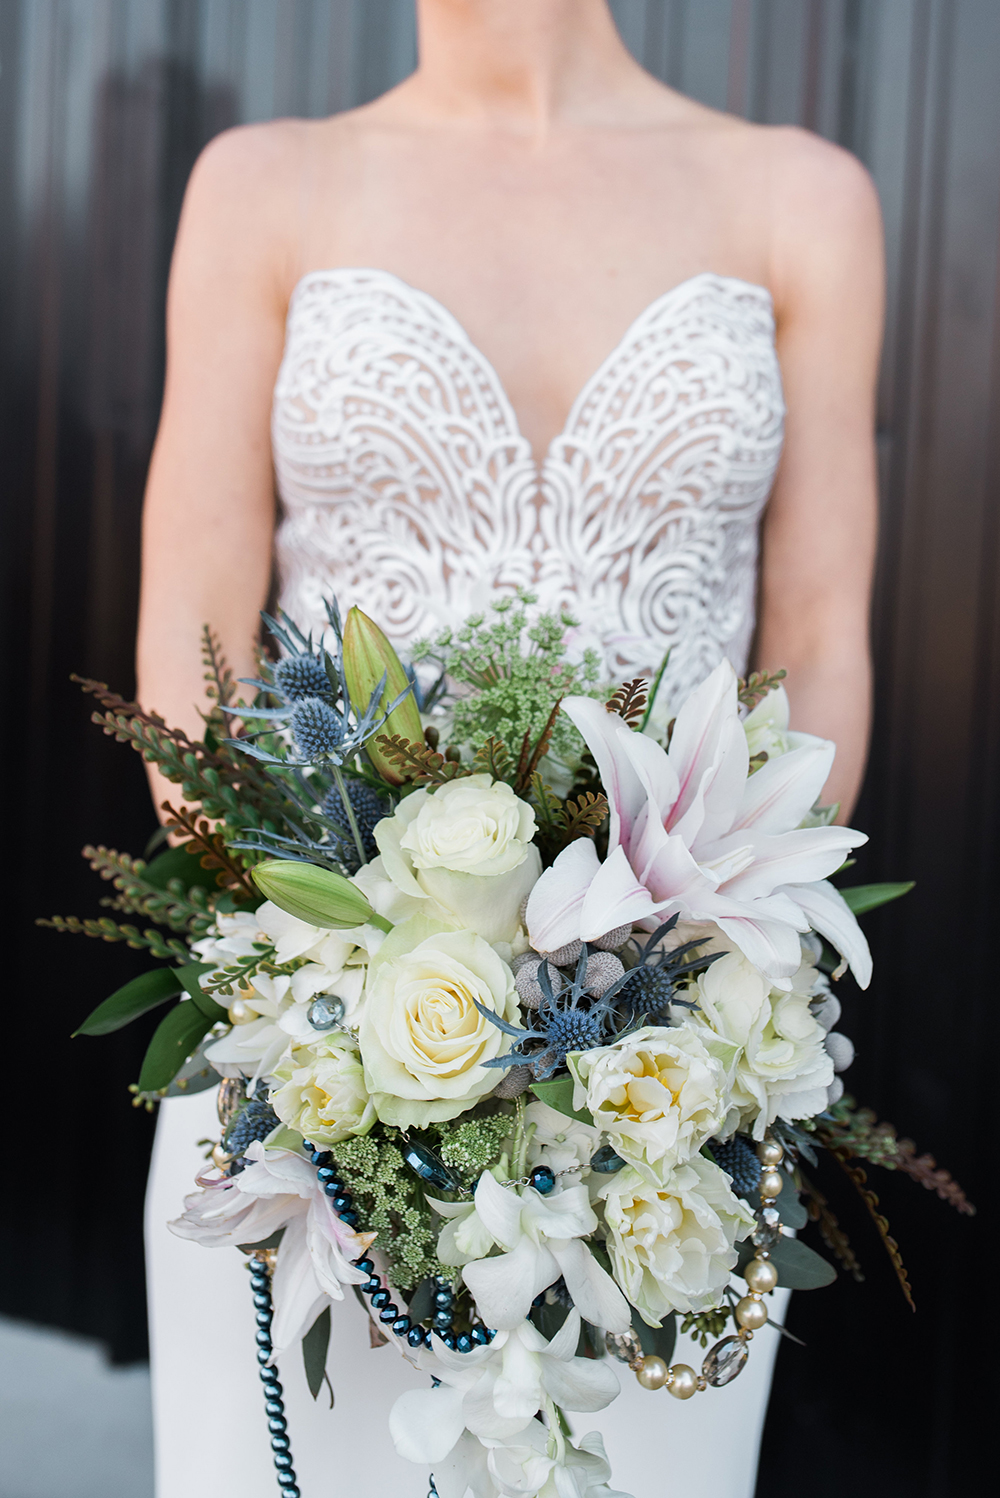 bridal bouquet with lilies and blue flowers - photo by Holly von Lanken http://ruffledblog.com/elegant-parisian-inspired-wedding-ideas